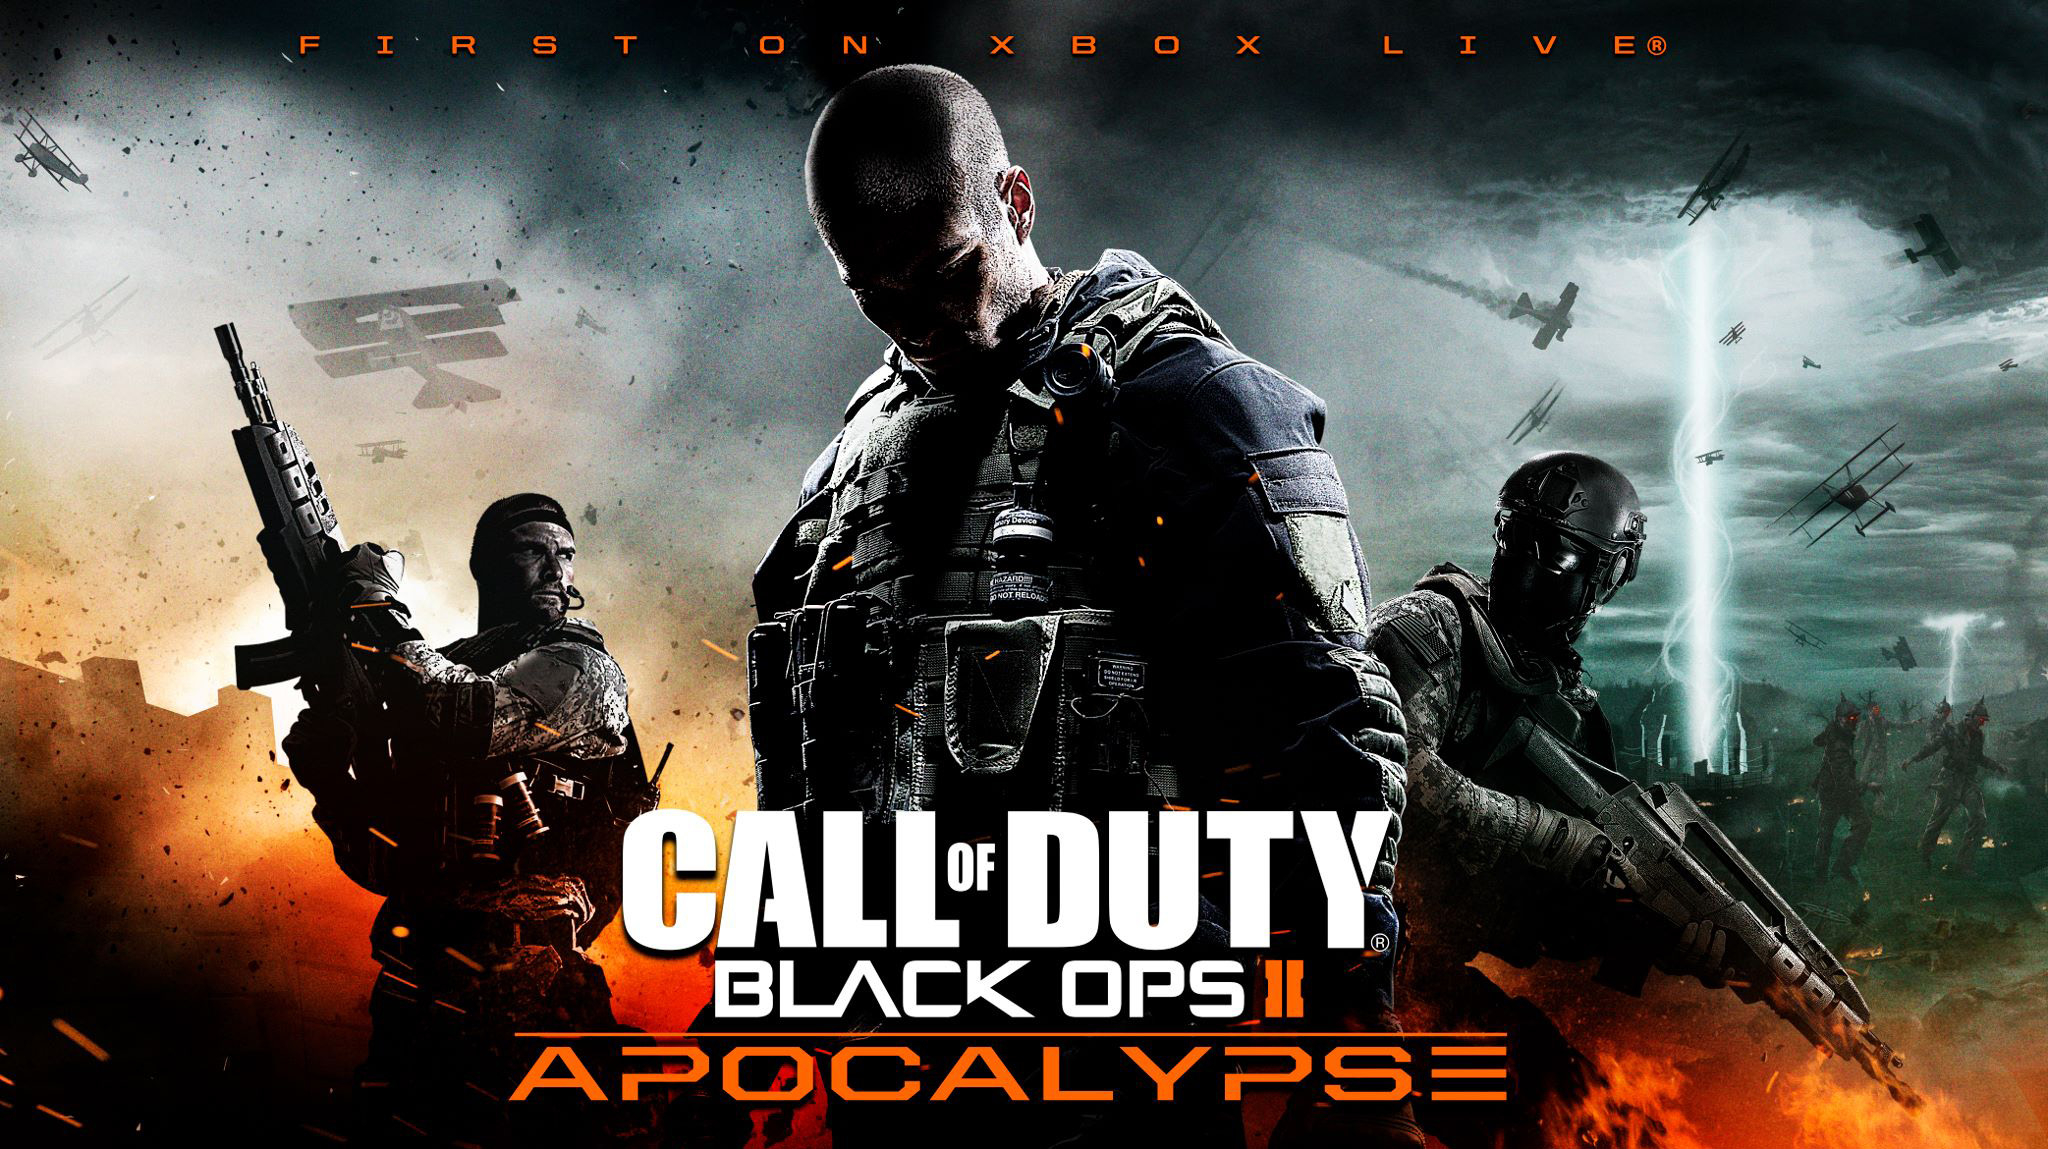 Call of Duty: Black Ops 2 DLC wraps up with 'Apocalypse', brings new Call Of Duty Black Ops Zombie Map Packs on